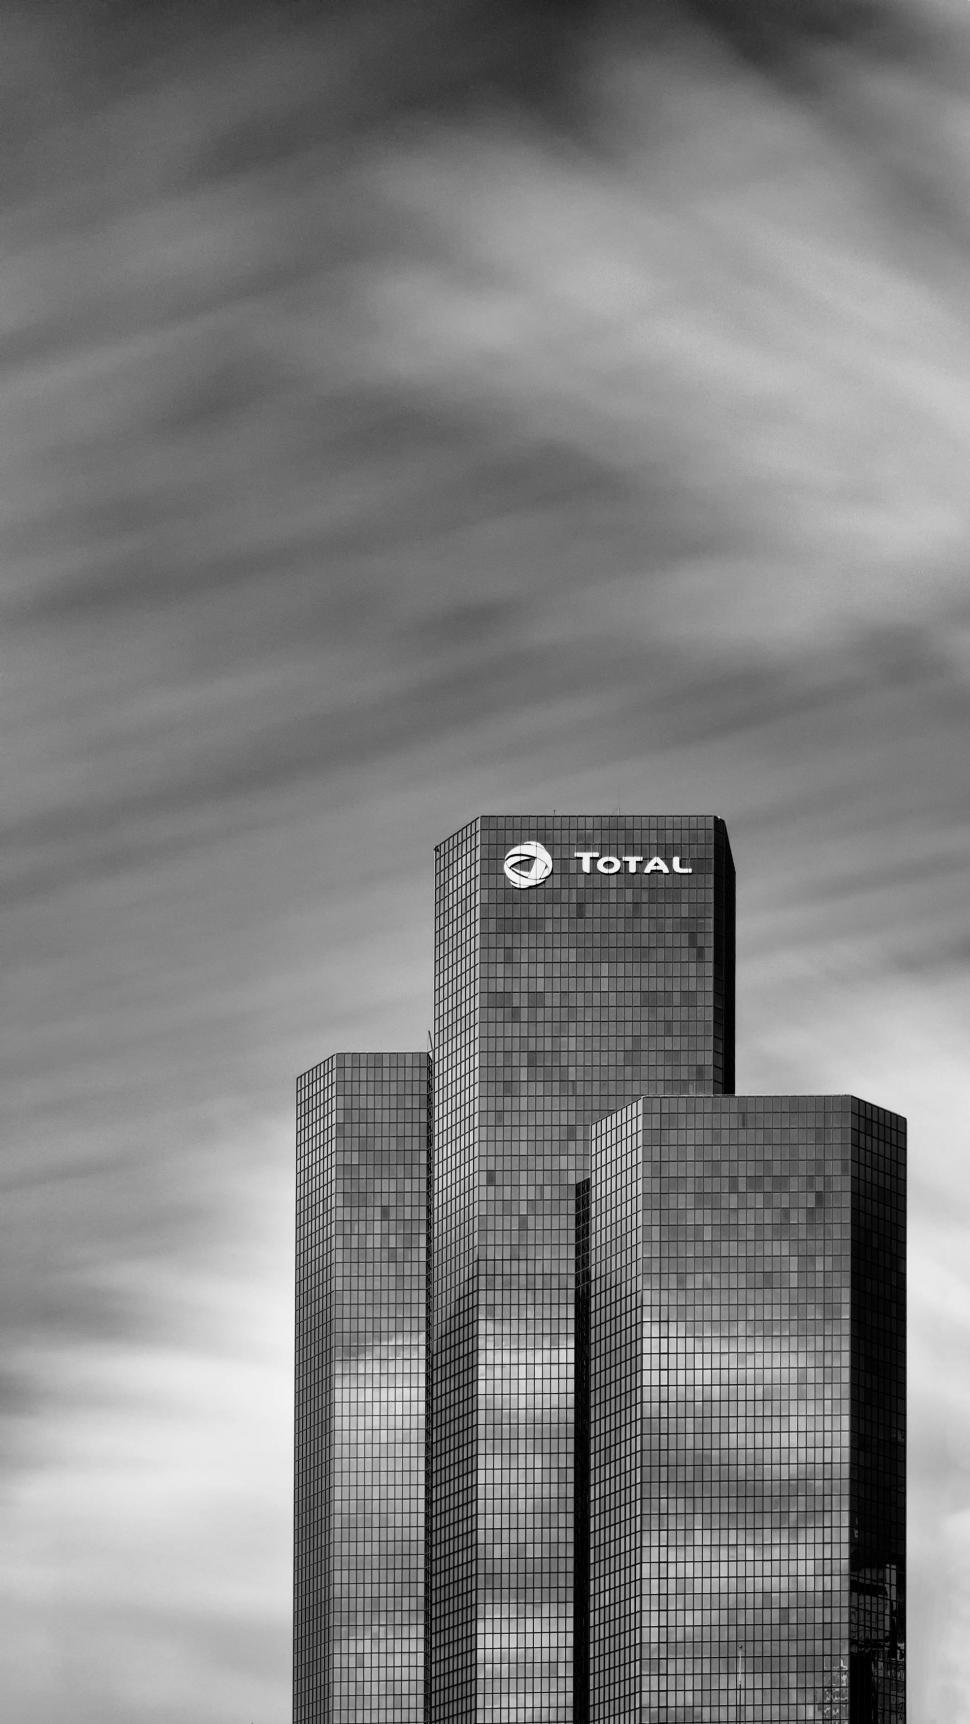 Download Free Stock Photo of Tour Total, La Défense, Paris